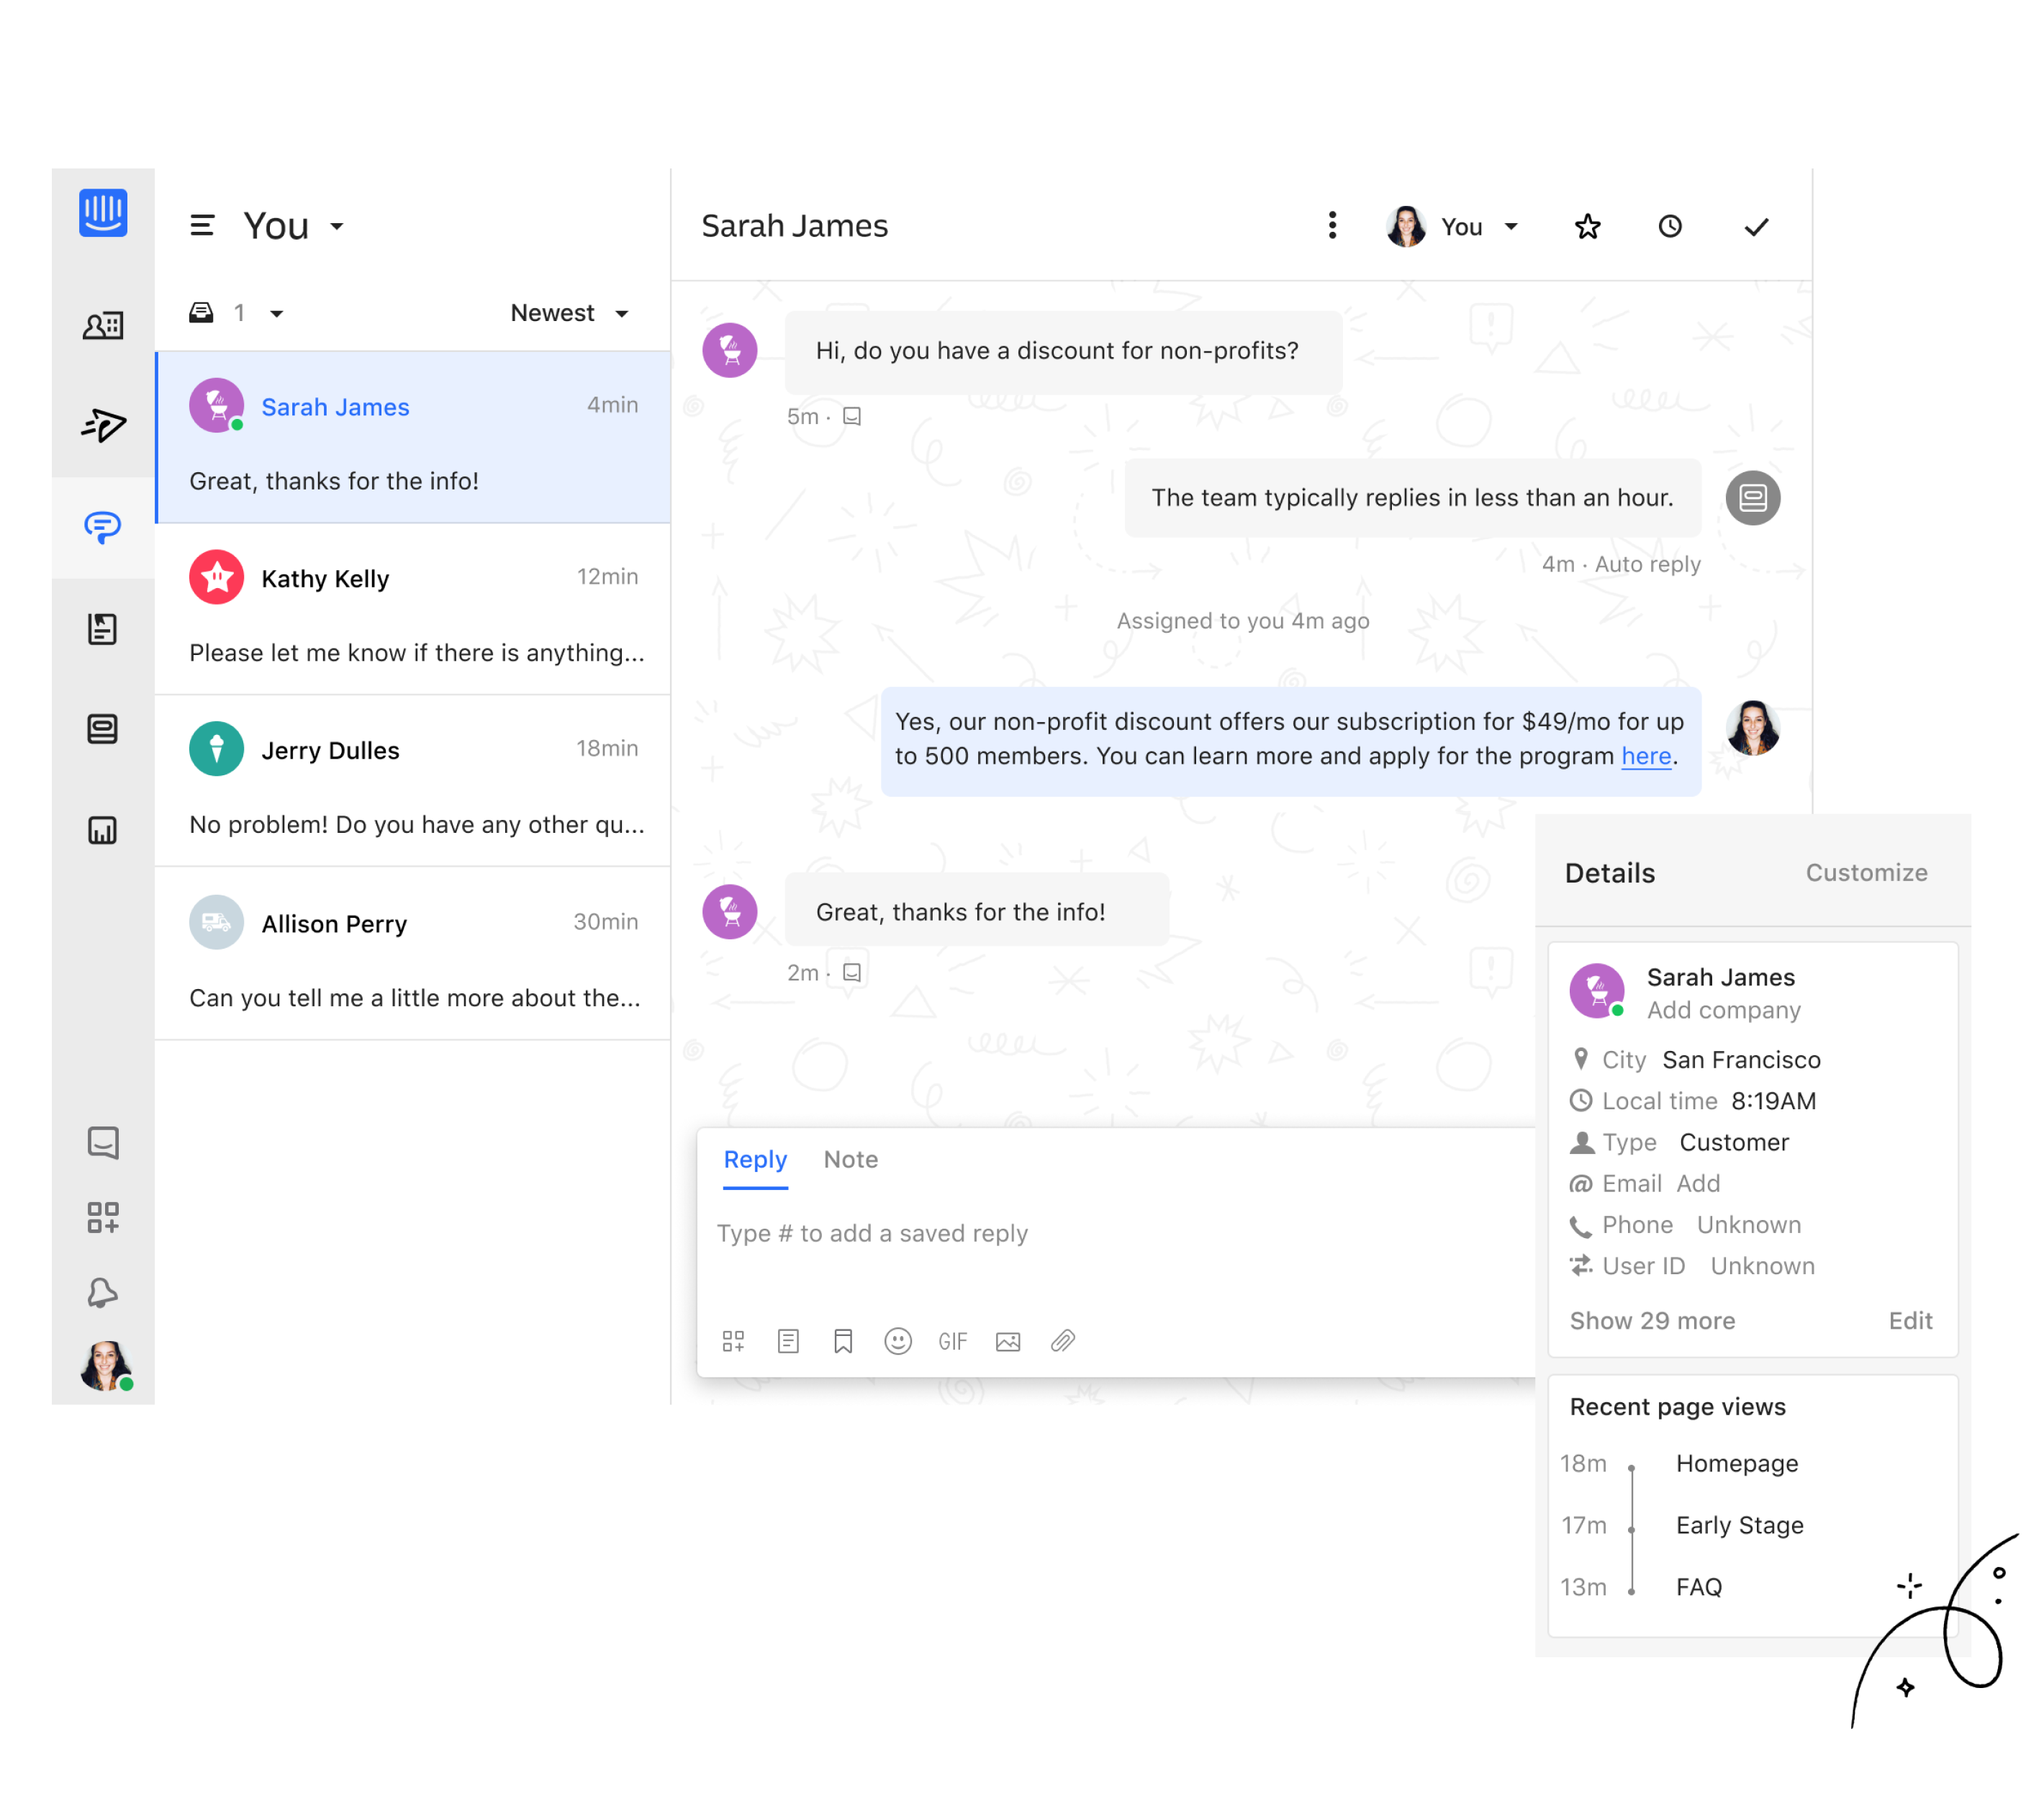 screenshot of Intercom inbox